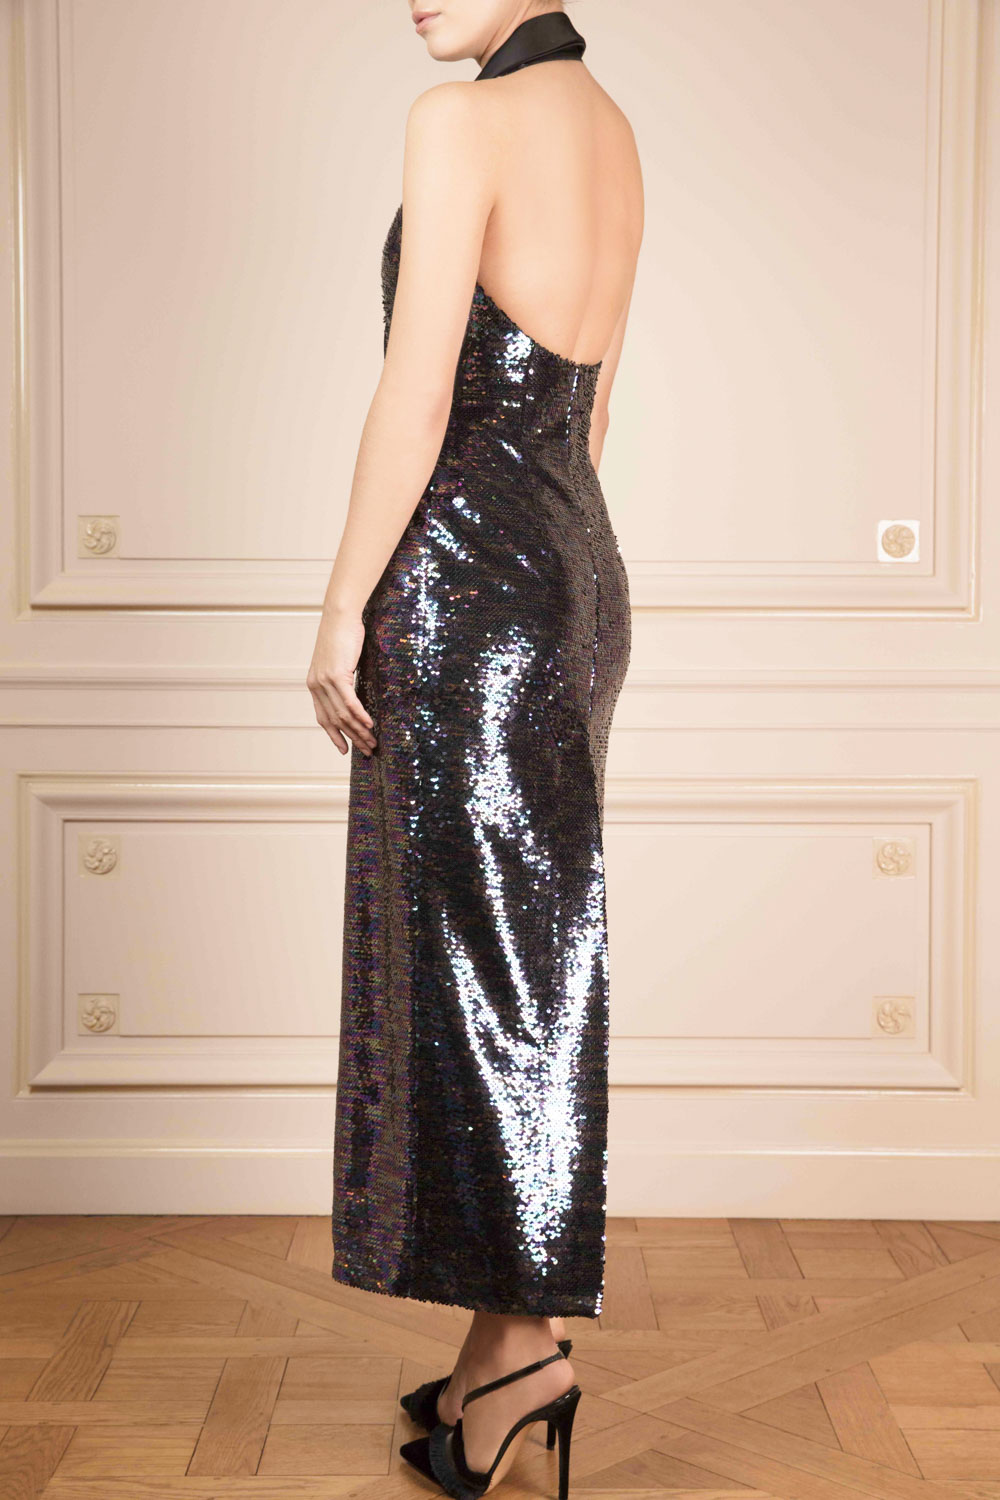 Halter-neck midi dress with multi-coloured sequins with black satin lapels